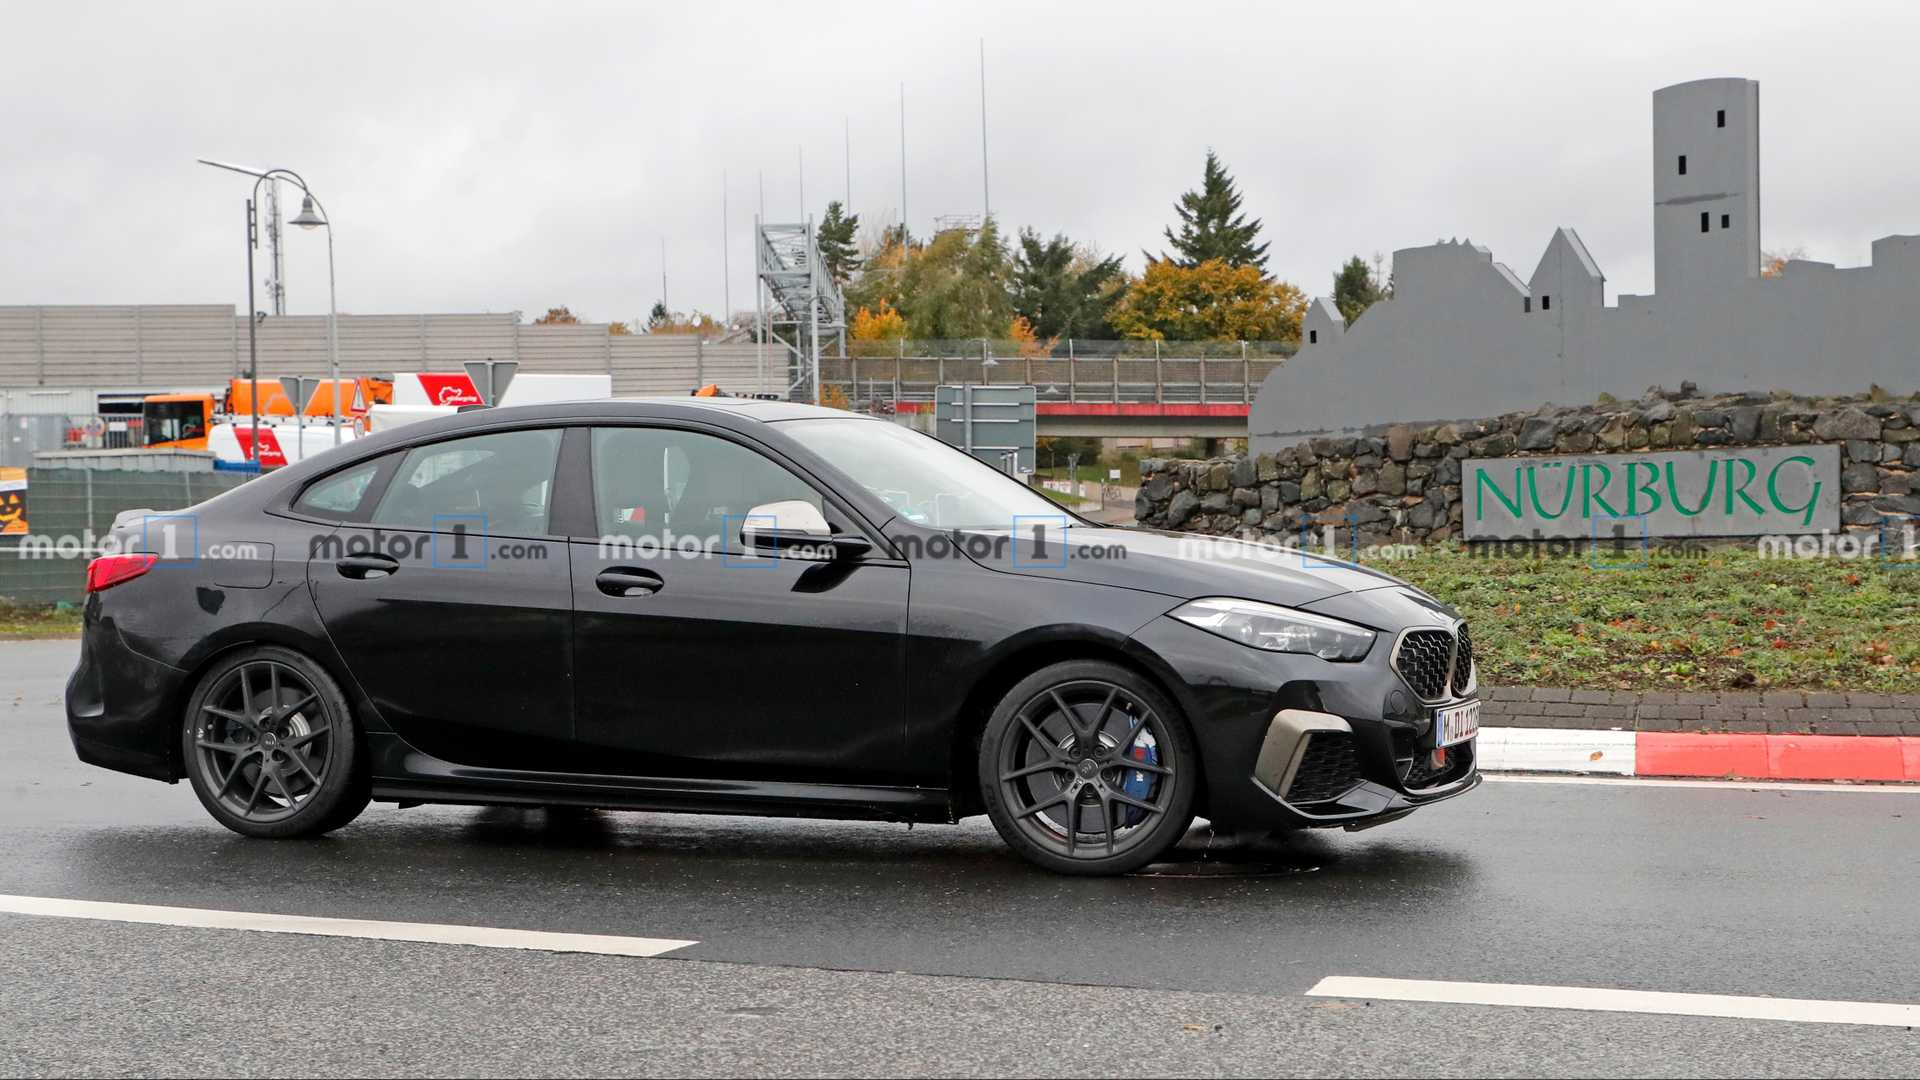 Front Wheel Drive Cars >> No Front Wheel Drive Based M Cars According To Bmw